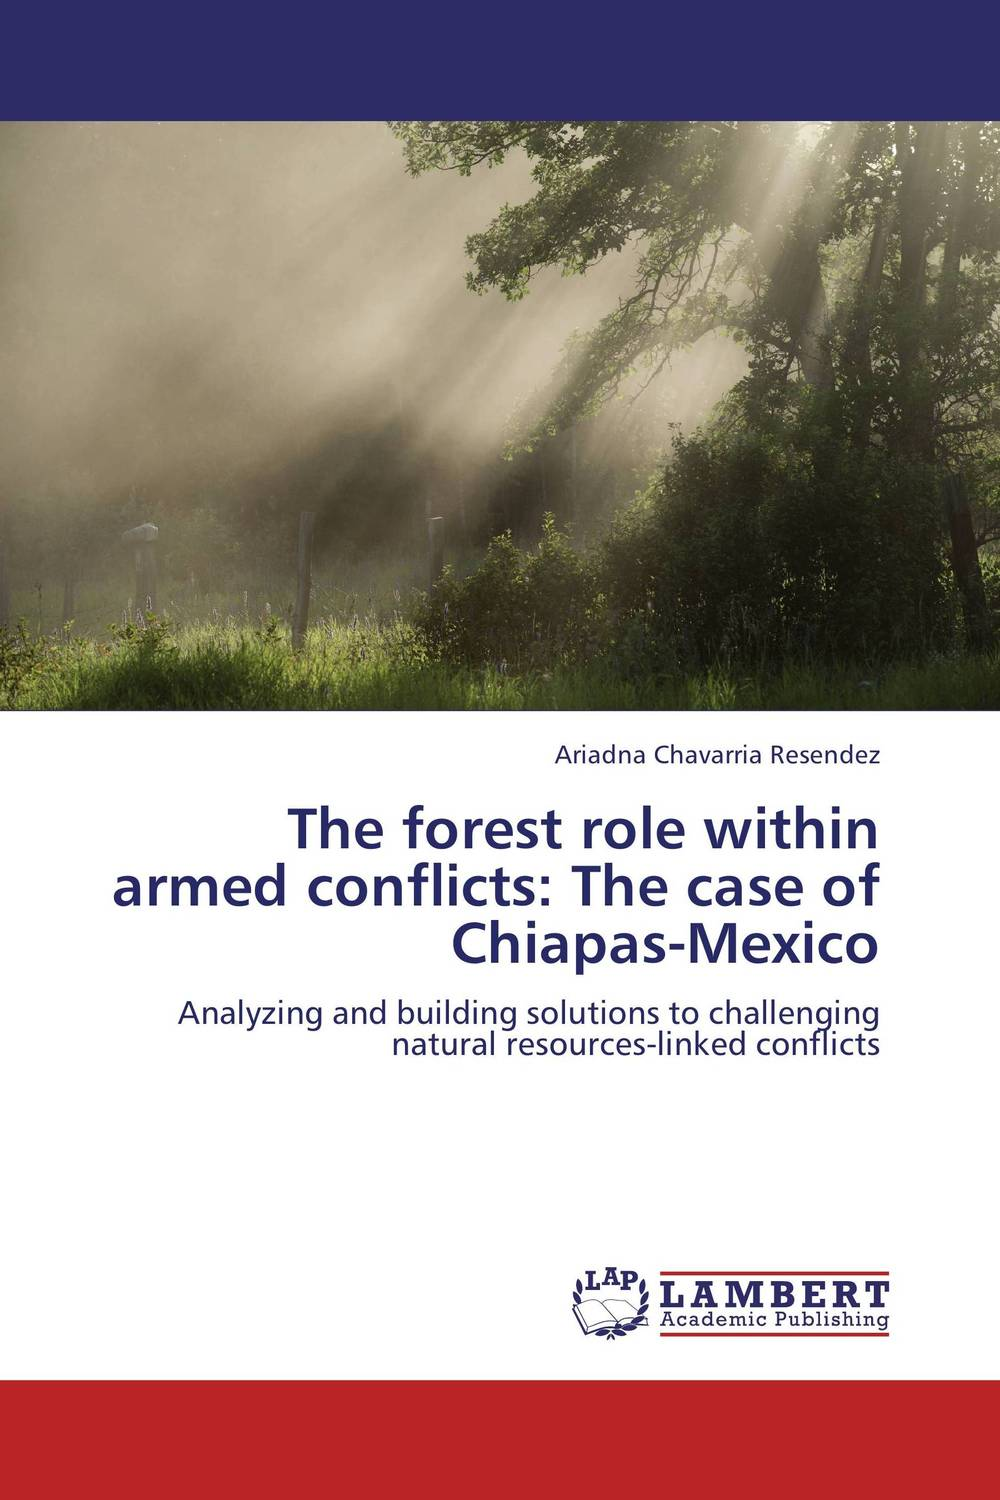 The forest role within armed conflicts:  The case of Chiapas-Mexico the role of absurdity within english humour